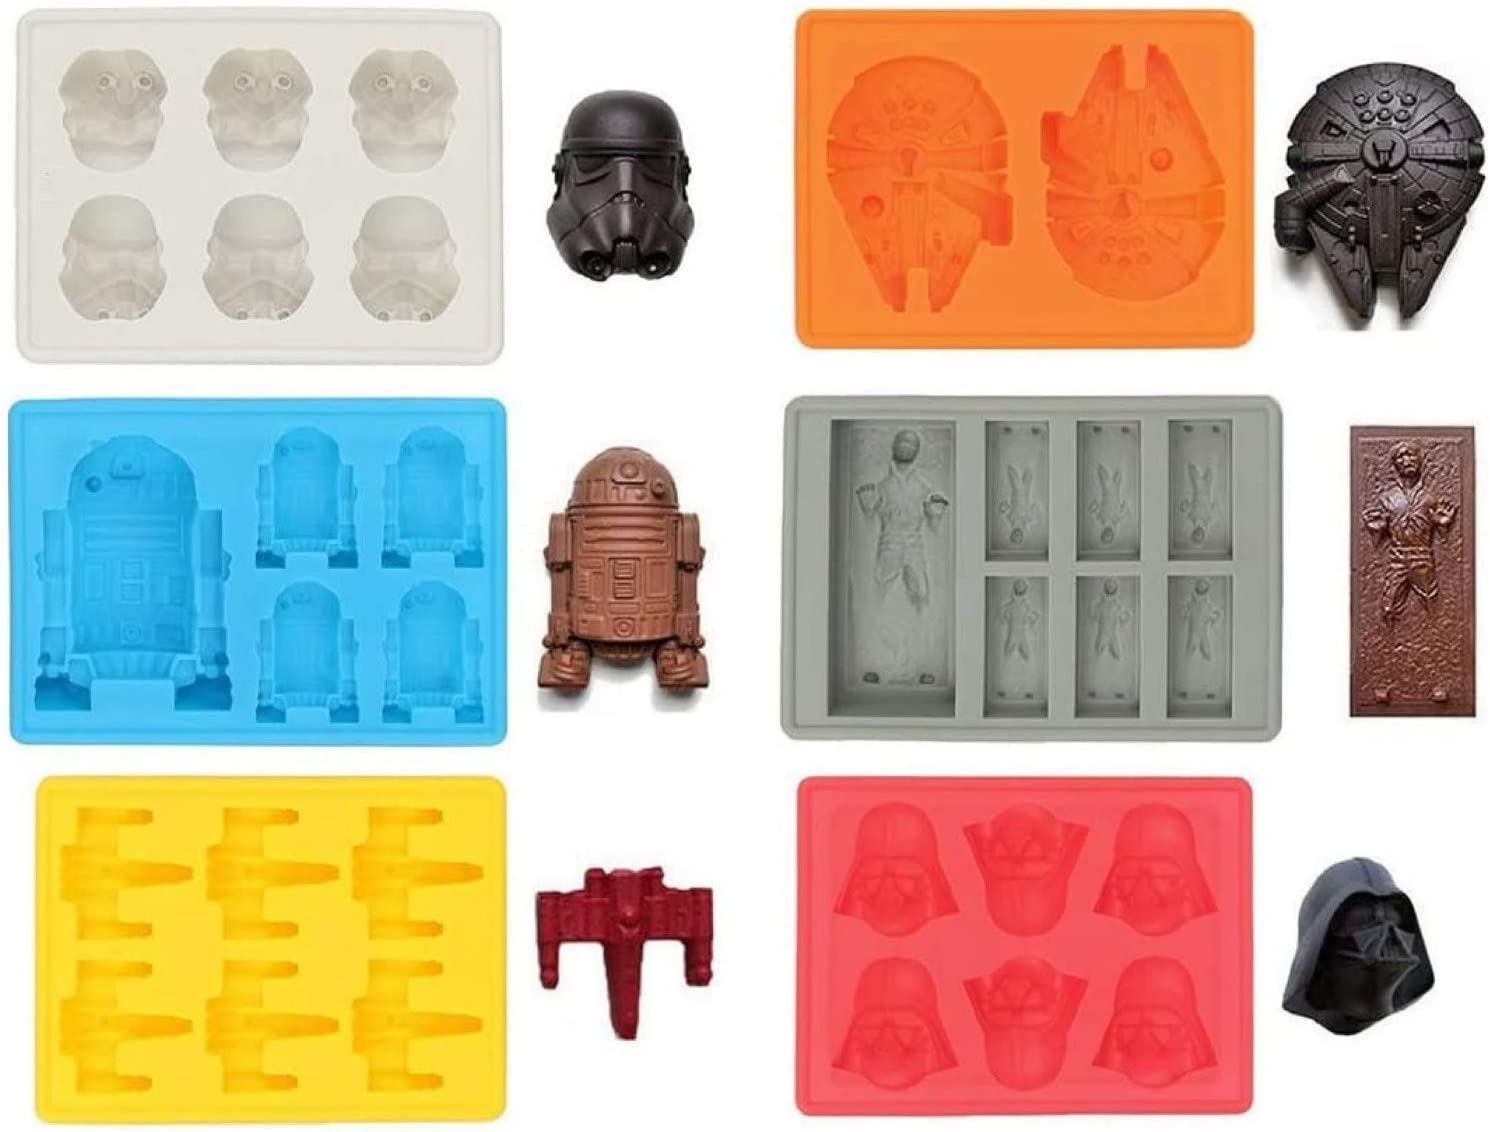 Set of 6 Star Wars, Silicone Ice Tray Molds in Star Wars Shapes, Ideal for Chocolate, Ice, Jelly, Sweets and Desserts. Molds: Stormtrooper, Darth Vader, X-Wing, Millennium Falcon, R2-D2, Han Solo.